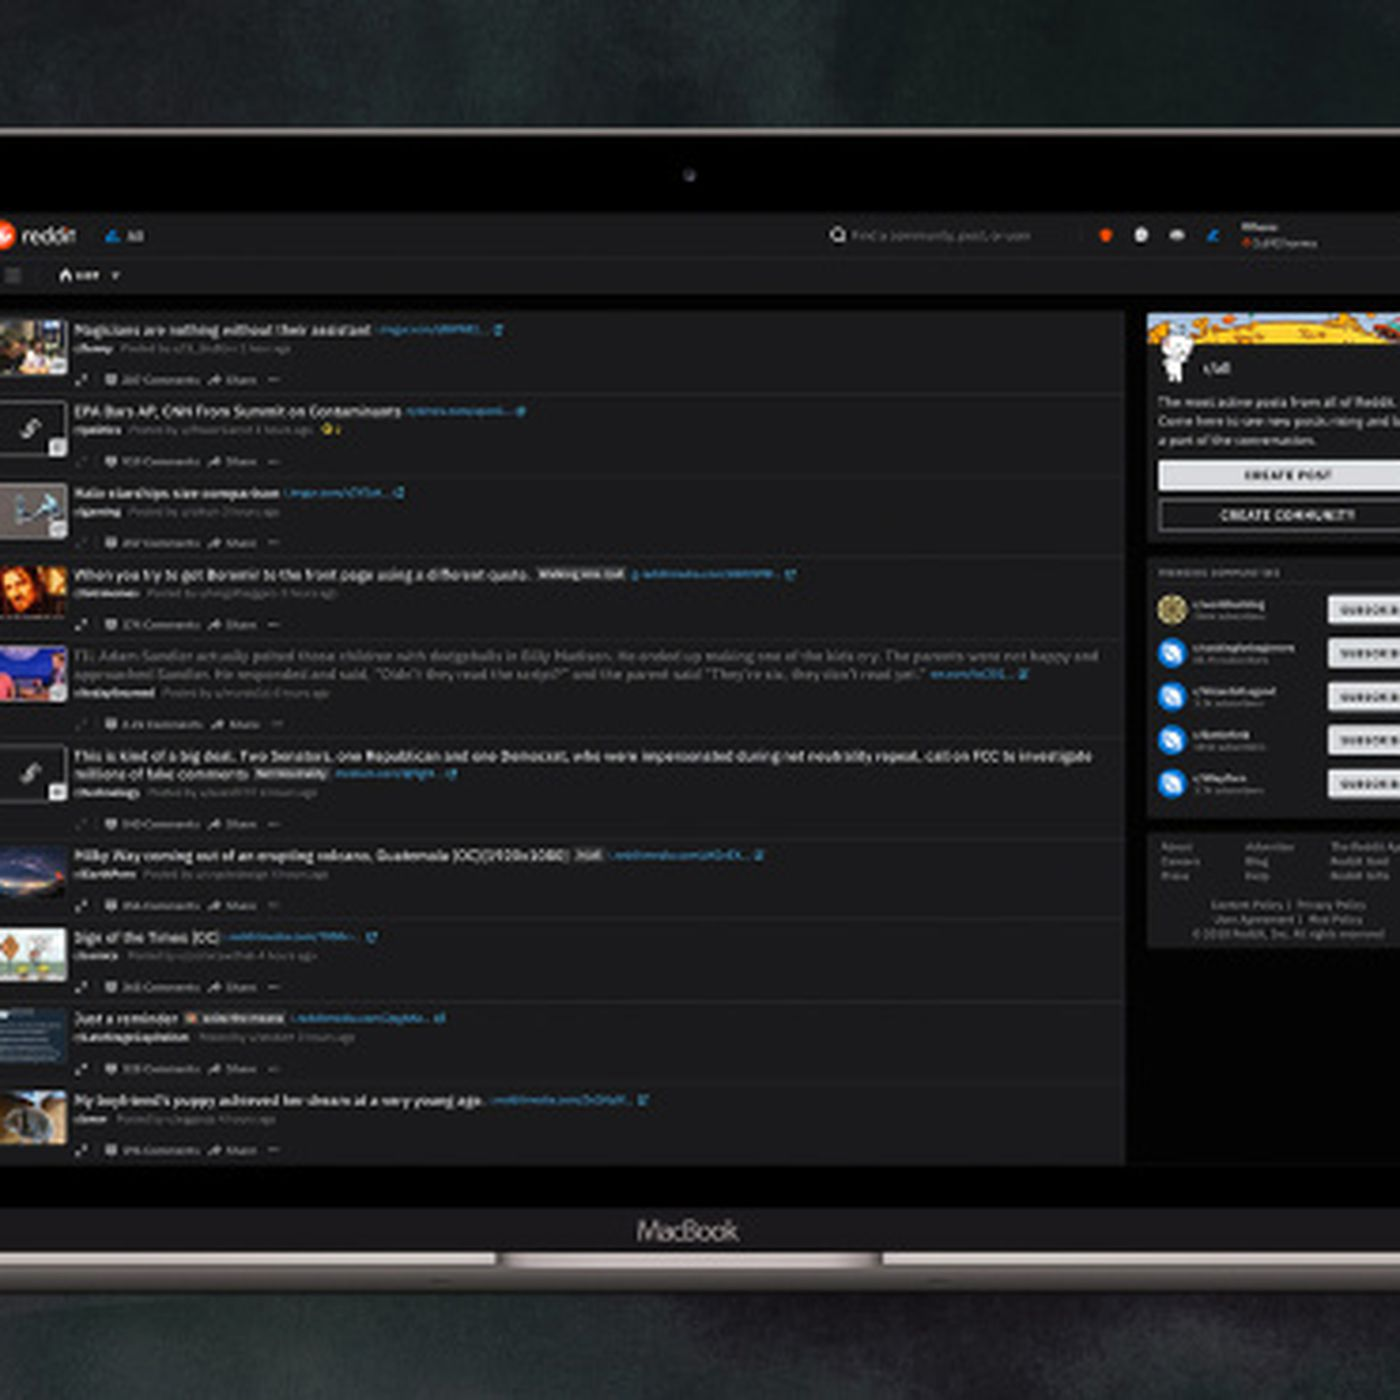 How to enable Reddit dark mode - The Verge